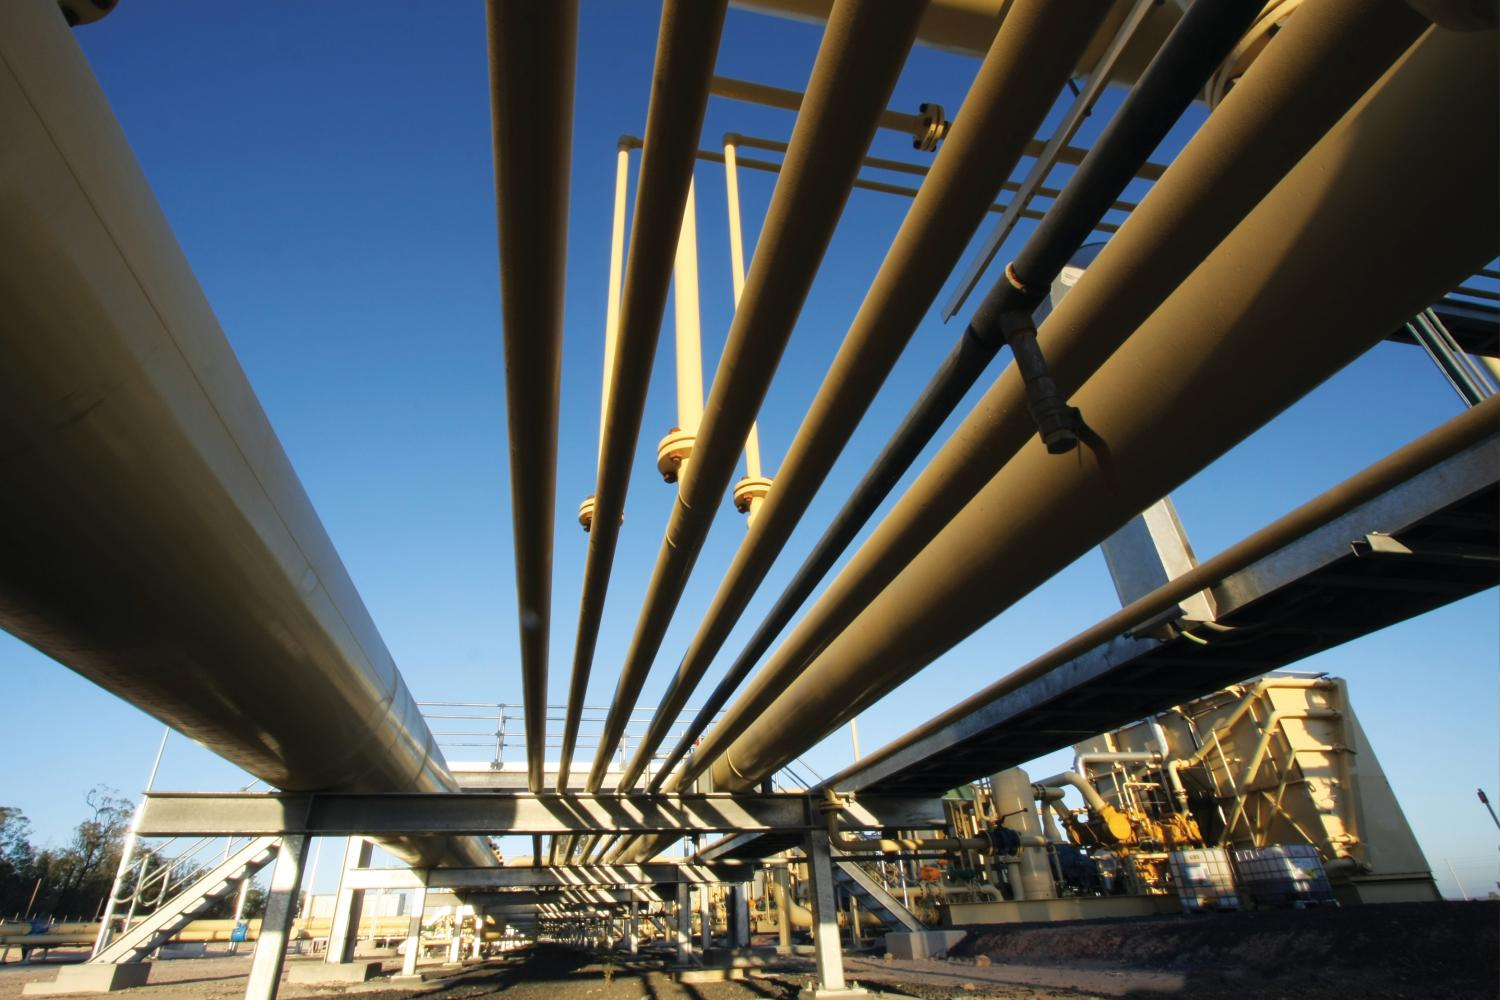 "<a href=""/en/sectors/natural-gas-imports""><b>1 billion cubic meters</b> of natural gas importation per year</a>"